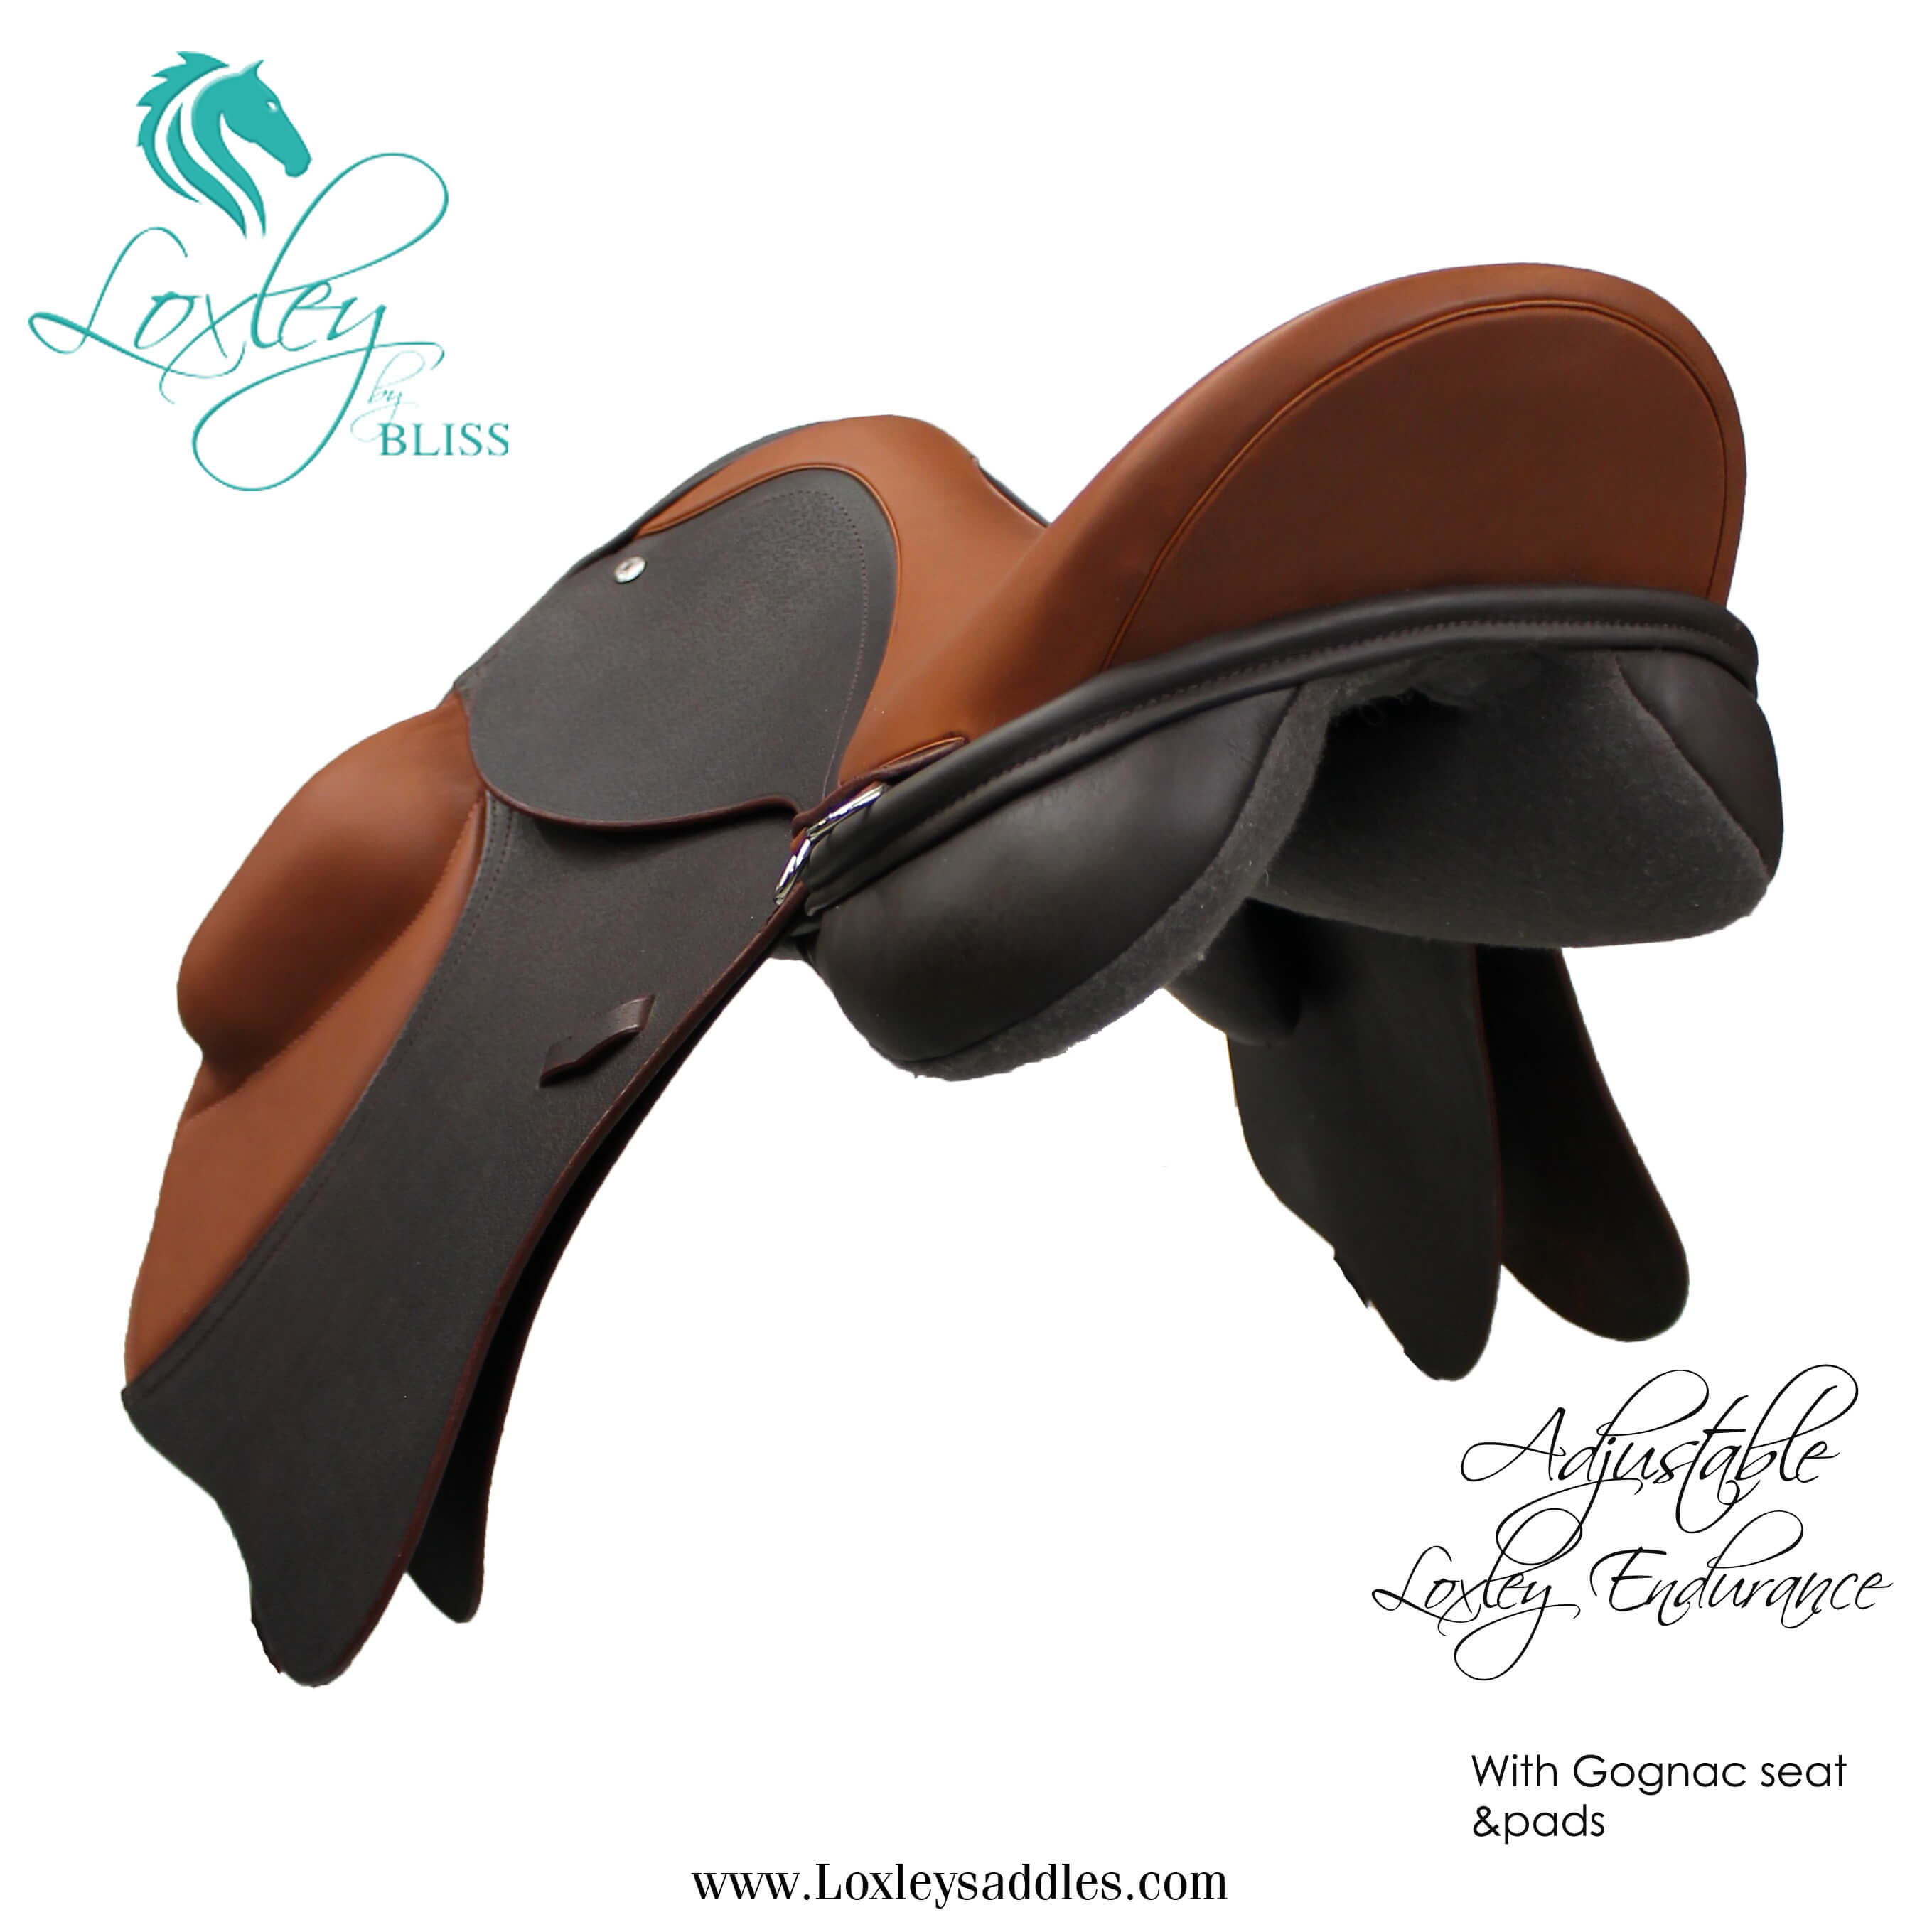 1A feature image Loxley endurance saddle 035 - side 34 Template